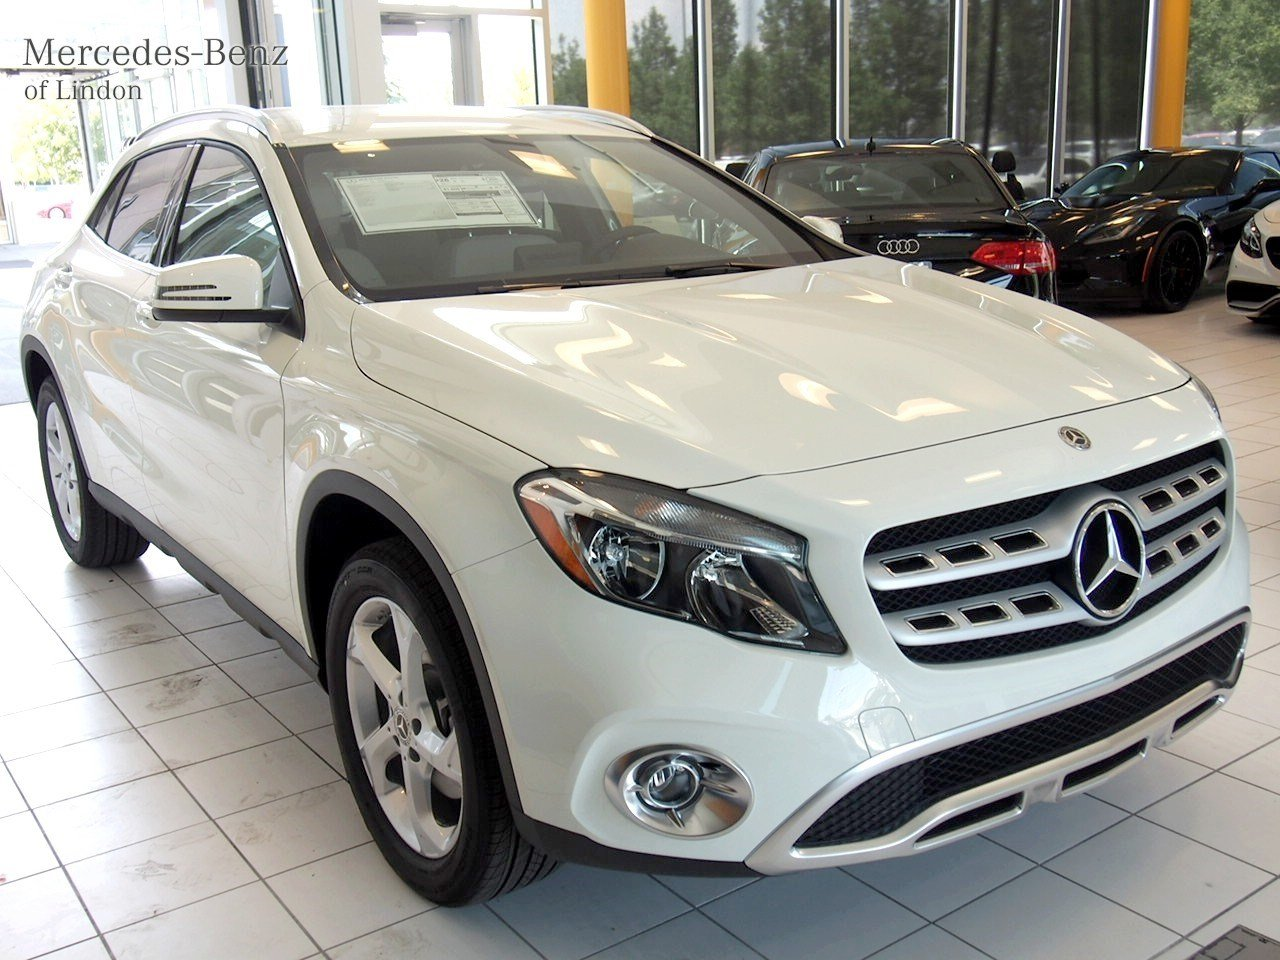 new 2018 mercedes benz gla gla 250 4matic suv in lindon jj394649 mercedes benz of lindon. Black Bedroom Furniture Sets. Home Design Ideas